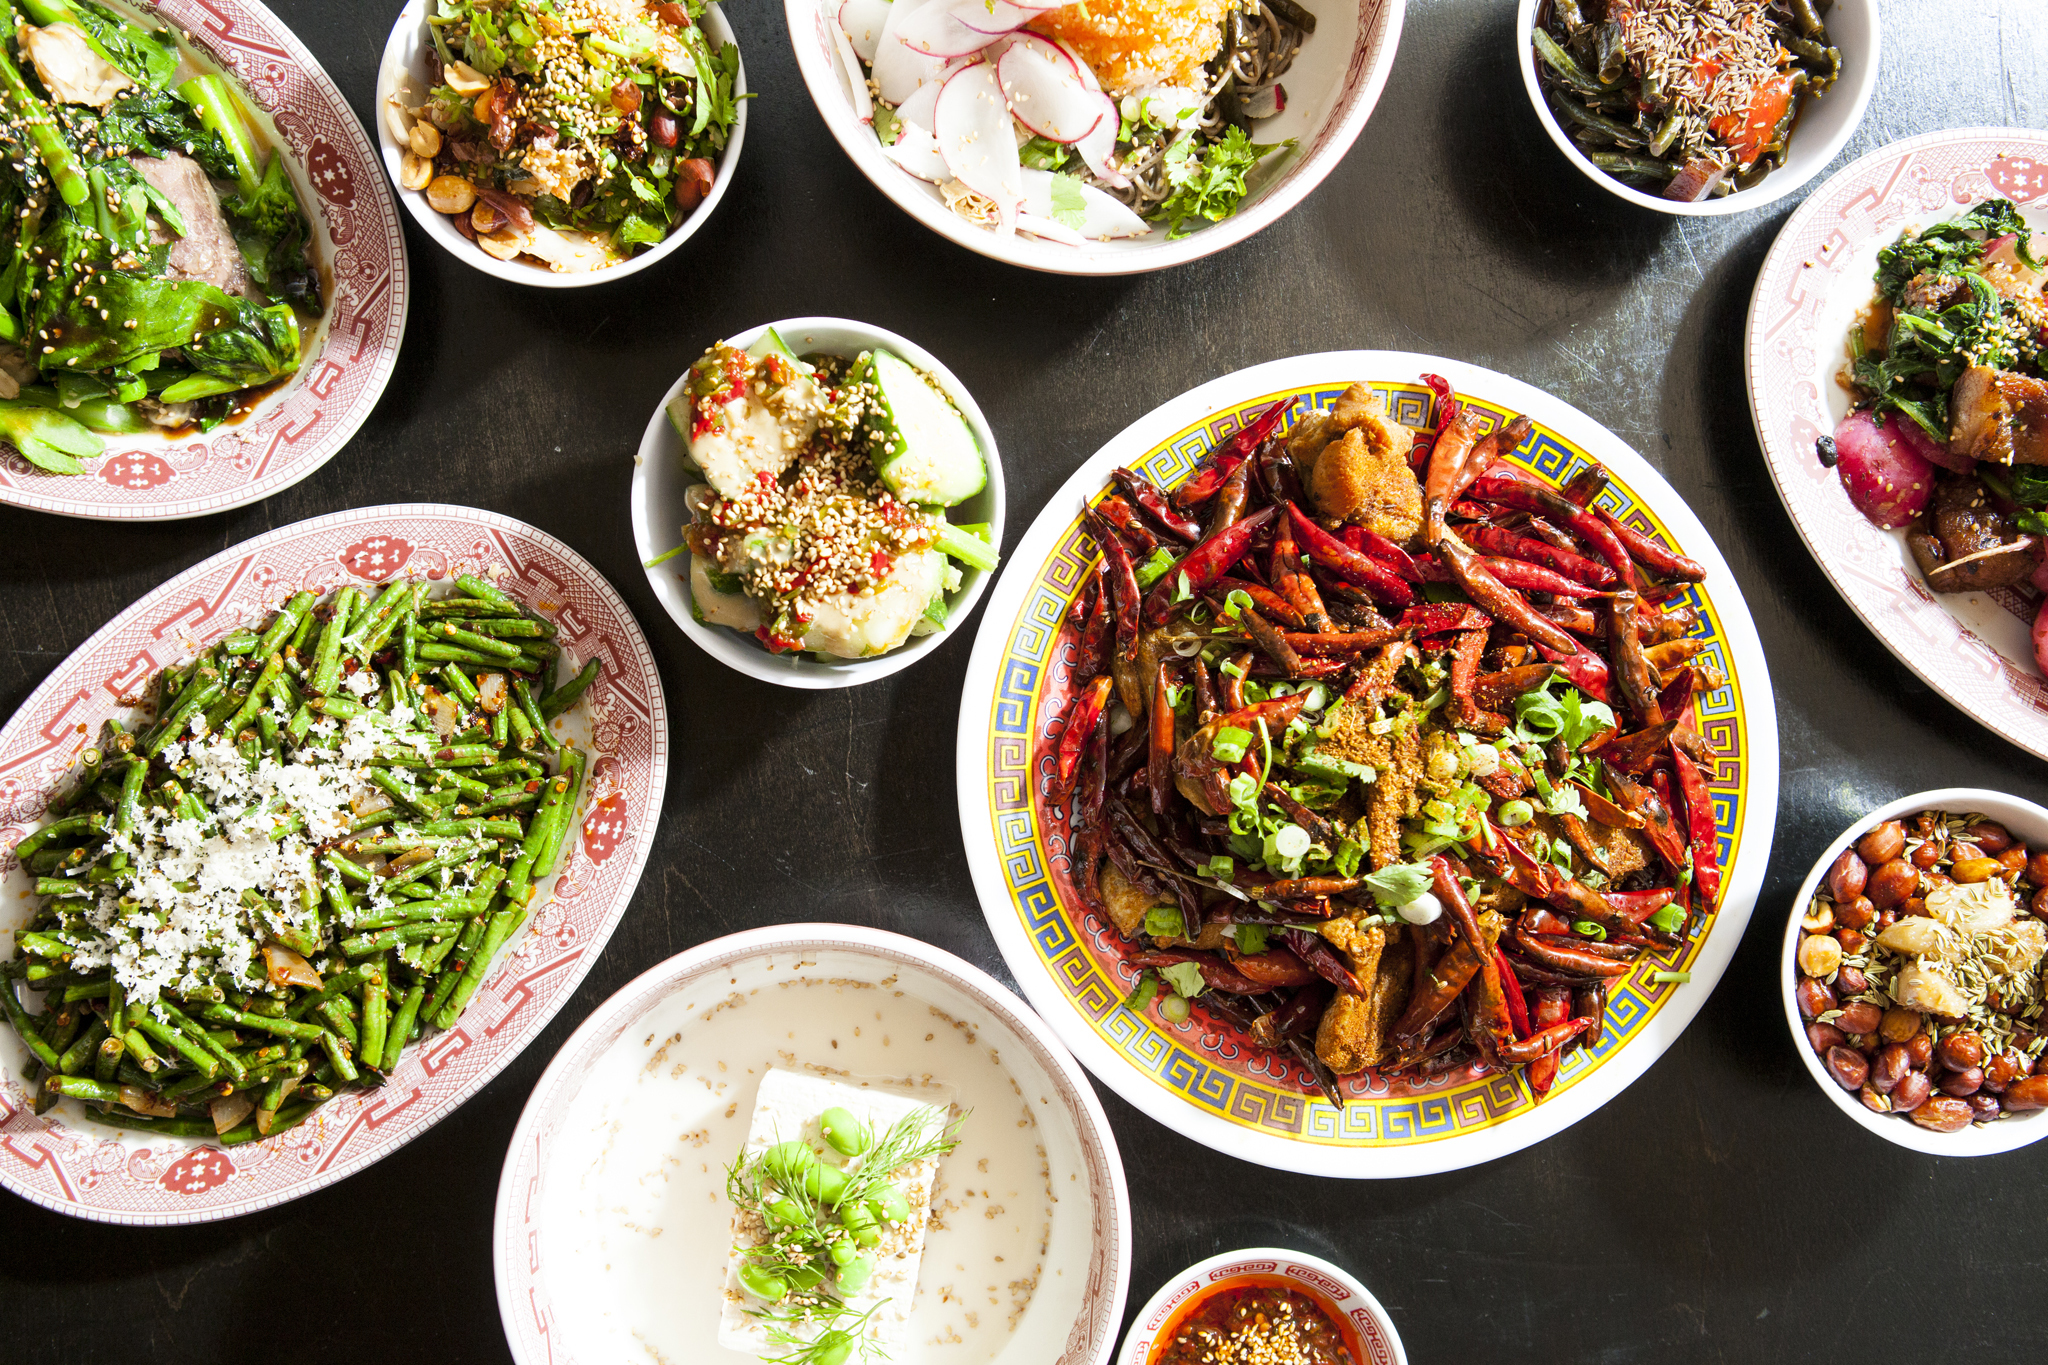 Mission chinese food opens on the lower east side for Amber asian cuisine nyc